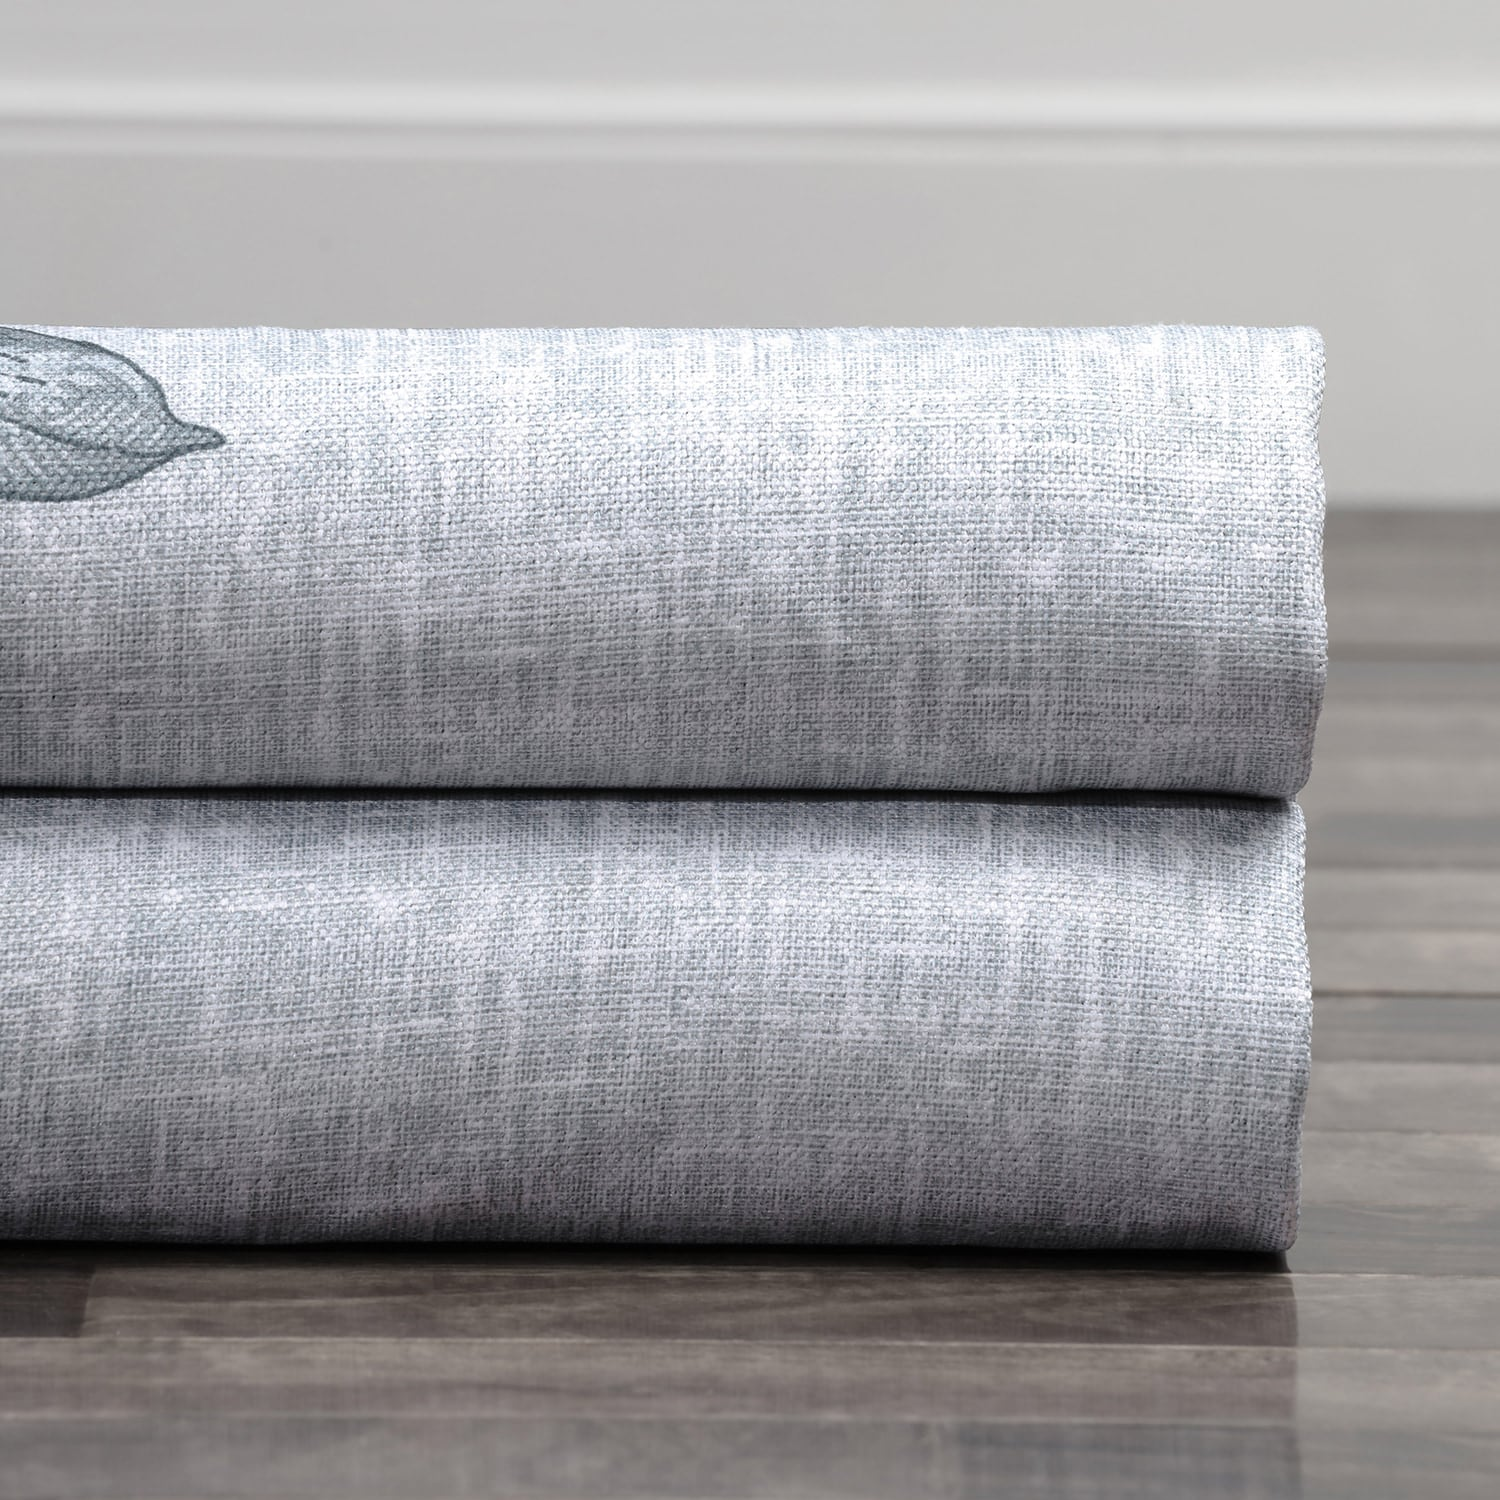 Copenhagen Grey Printed Linen Textured Blackout Swatch